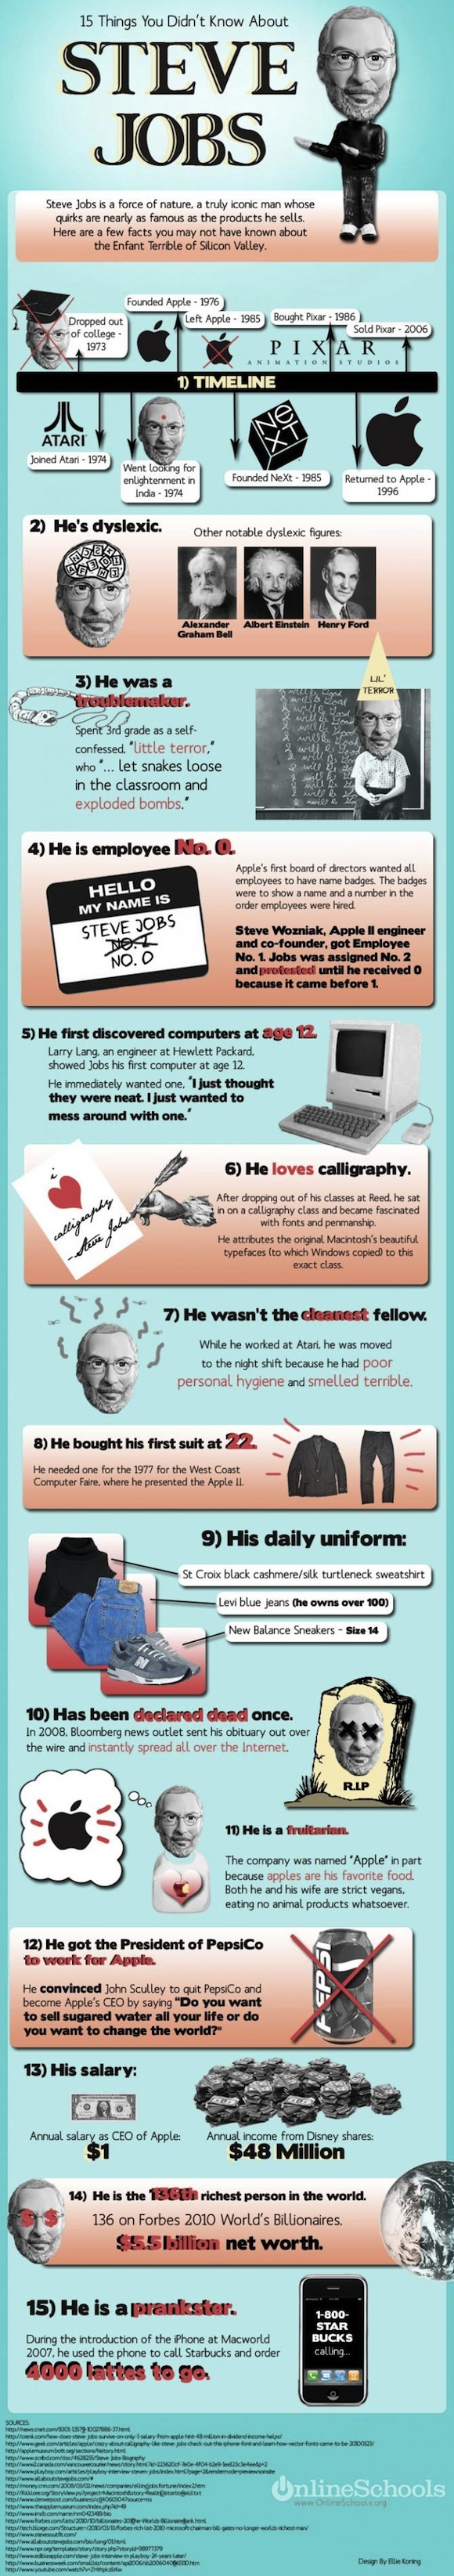 15 THINGS YOU DID'NT KNOW ABOUT STEVE JOBS, SO FUNNY!    15 Cosas que no sabías sobre Steve Jobs, muy interesante!!